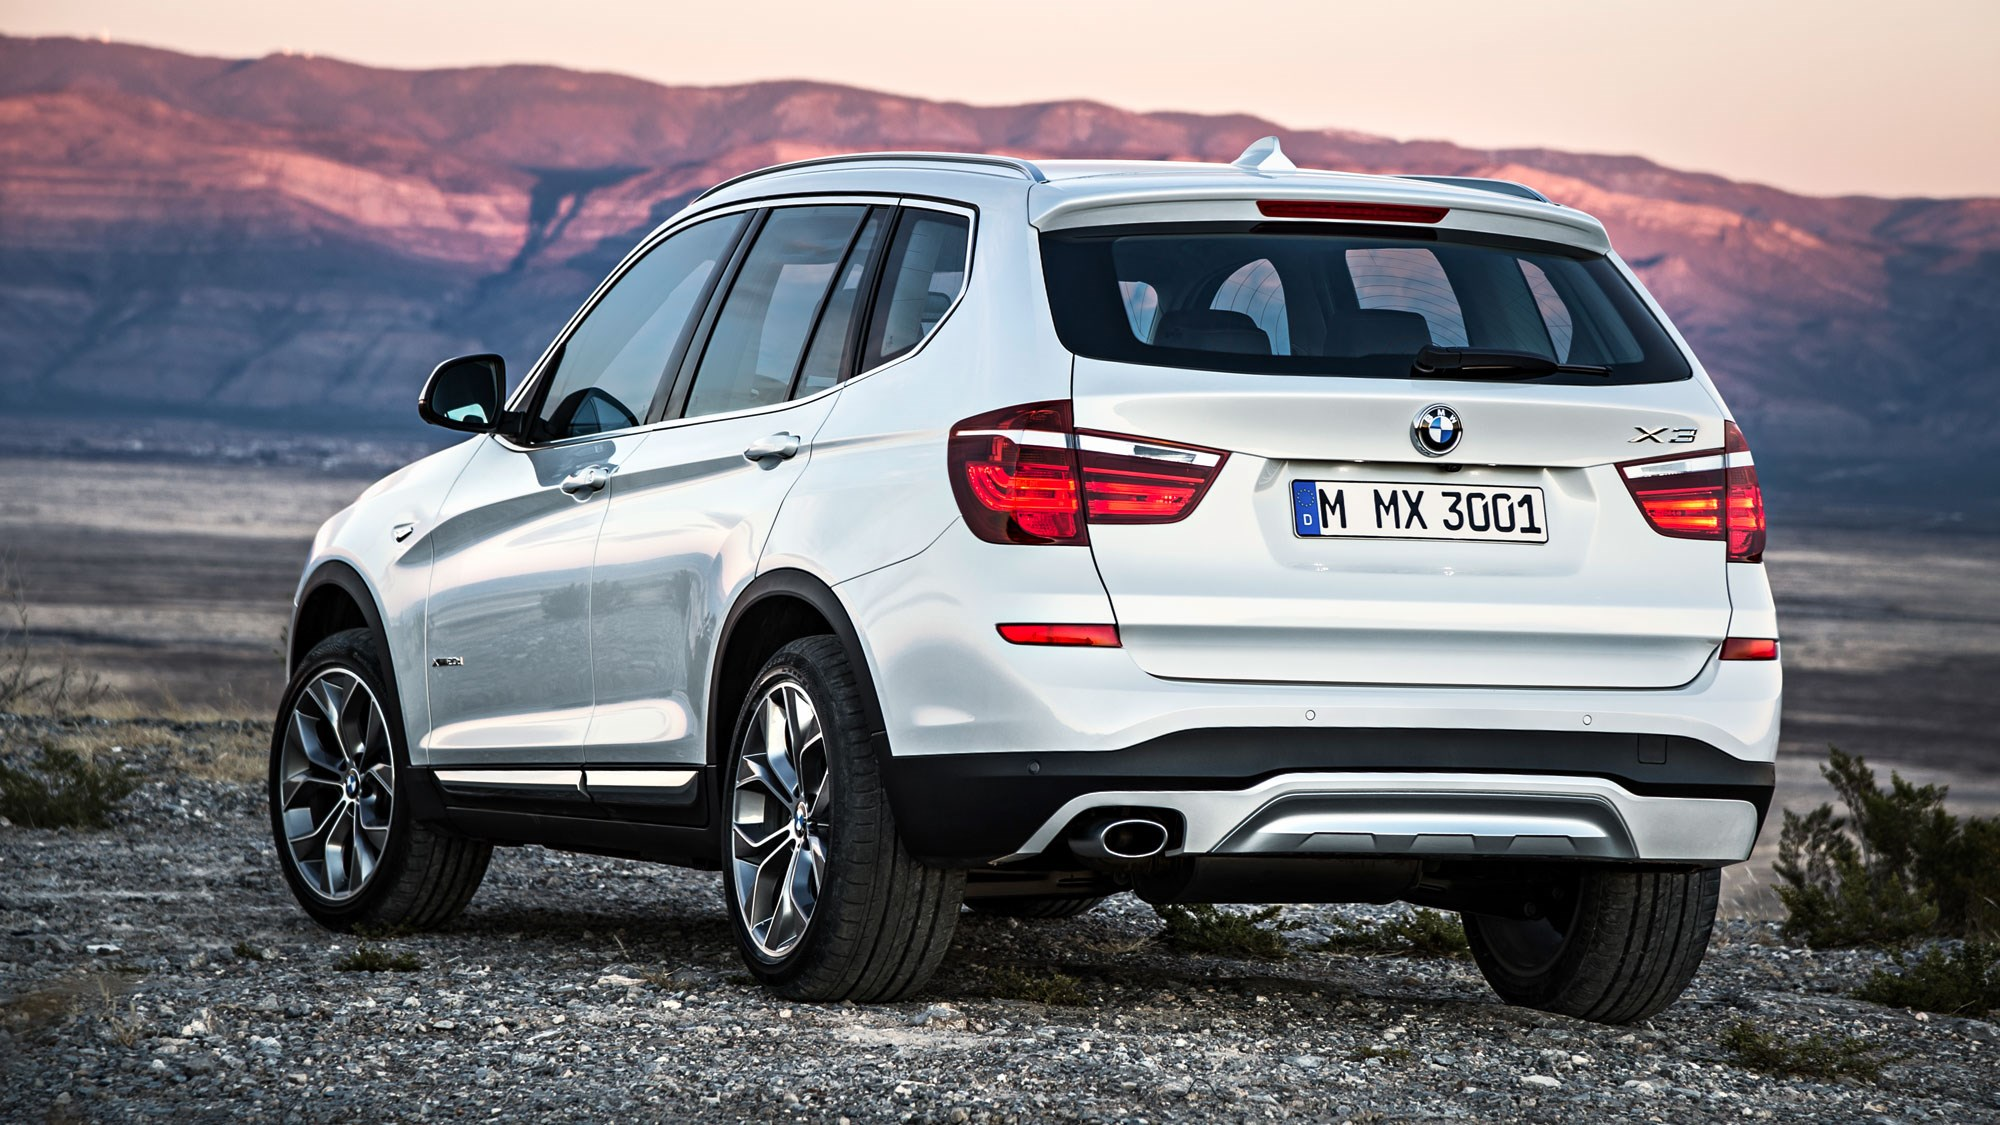 Bmw X3 Xdrive 20d M Sport  2015  Review